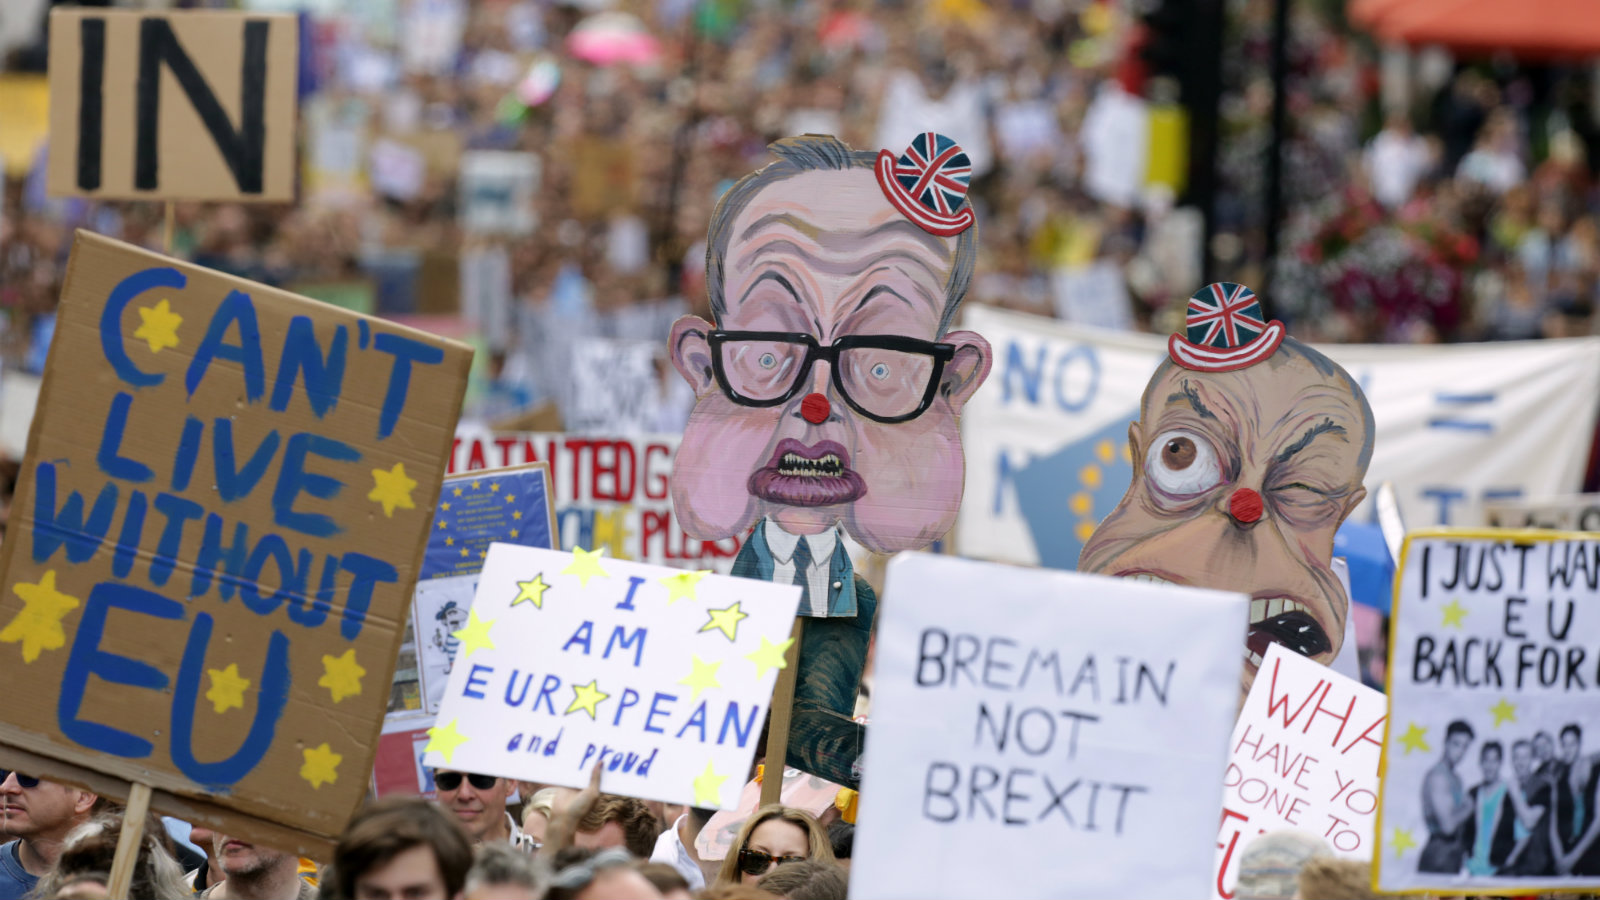 People hold banners during a 'March for Europe' demonstration against Britain's decision to leave the European Union, in central London, Britain July 2, 2016. Britain voted to leave the European Union in the EU Brexit referendum.